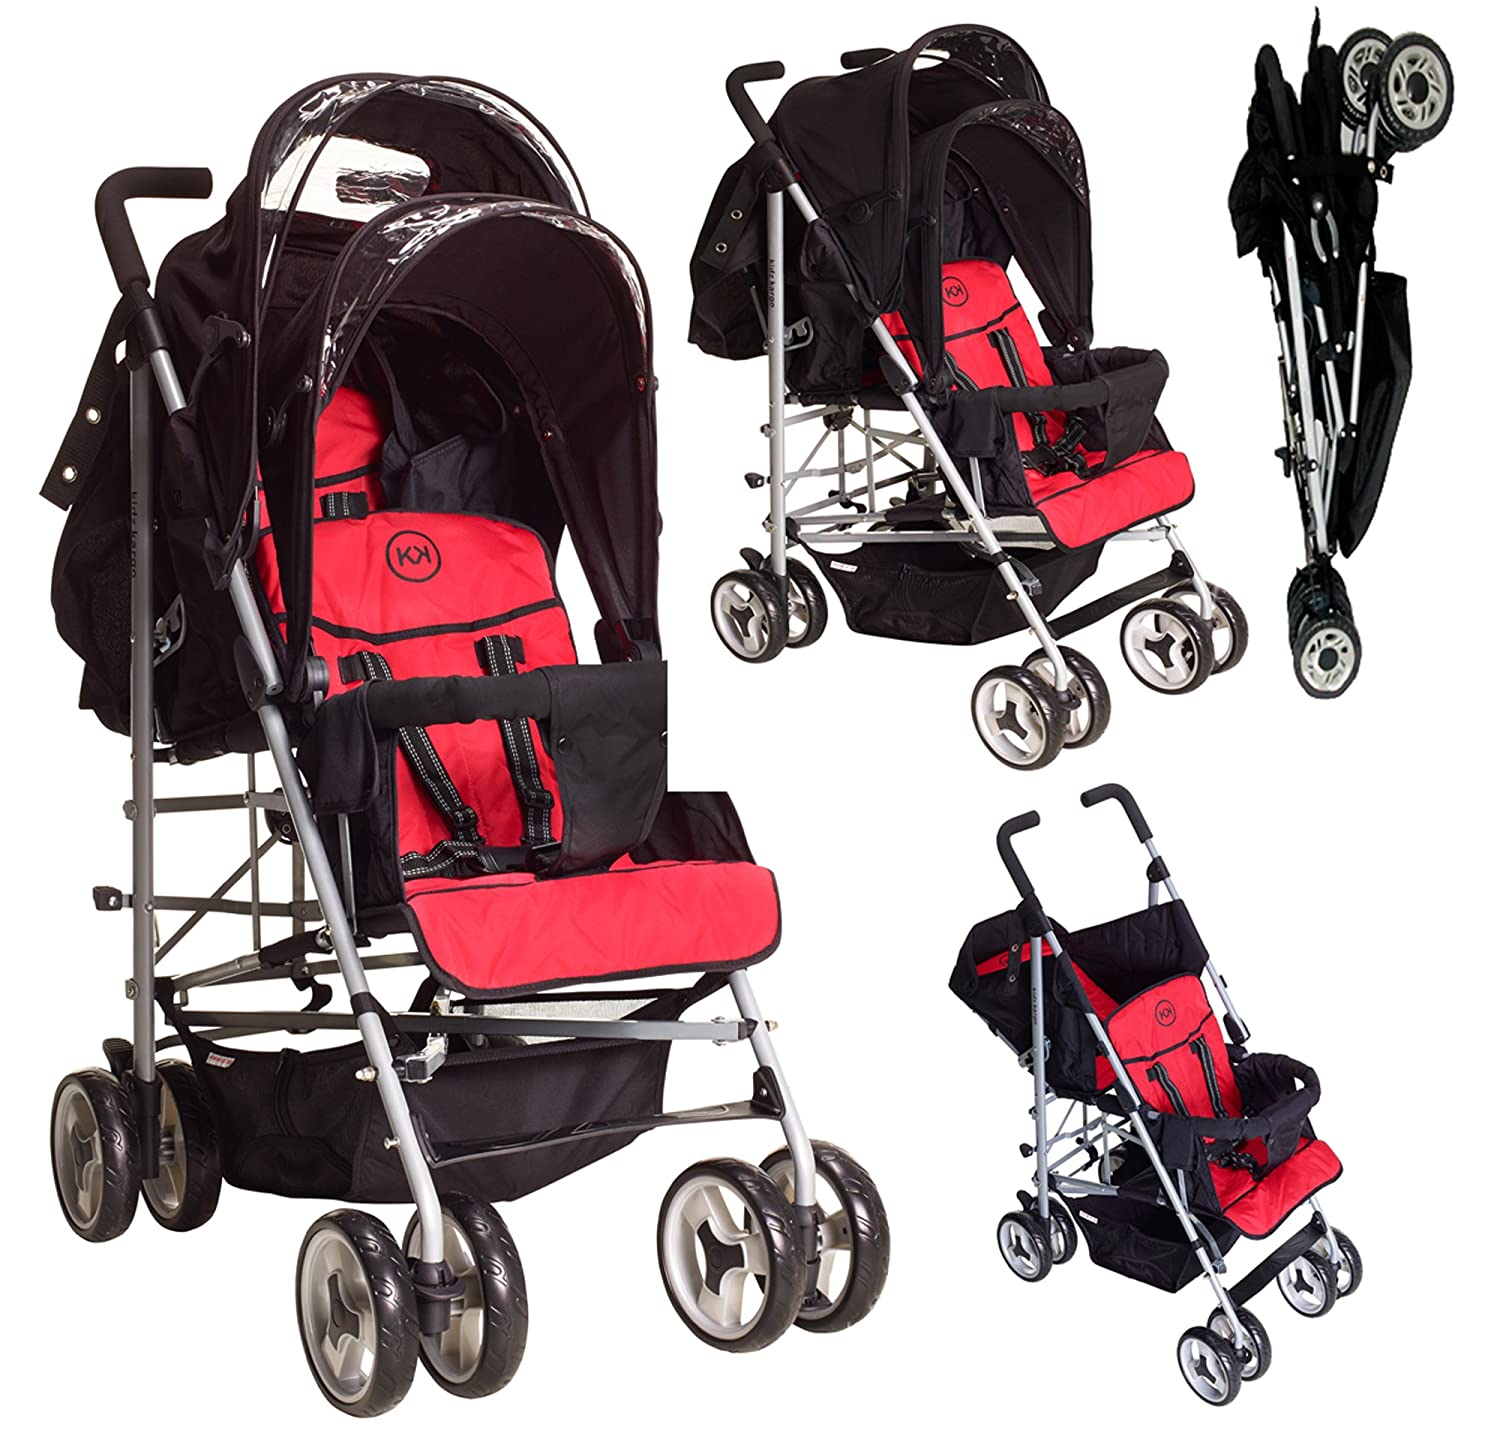 Duo Double Twin Tandem Pushchair by Kids Kargo. 2 seat units fully reclining lie back at the rear. Suitable for newborn or up to 33lb/15kg front seat from ...  sc 1 st  Amazon UK & Duo Double Twin Tandem Pushchair by Kids Kargo. 2 seat units ... islam-shia.org